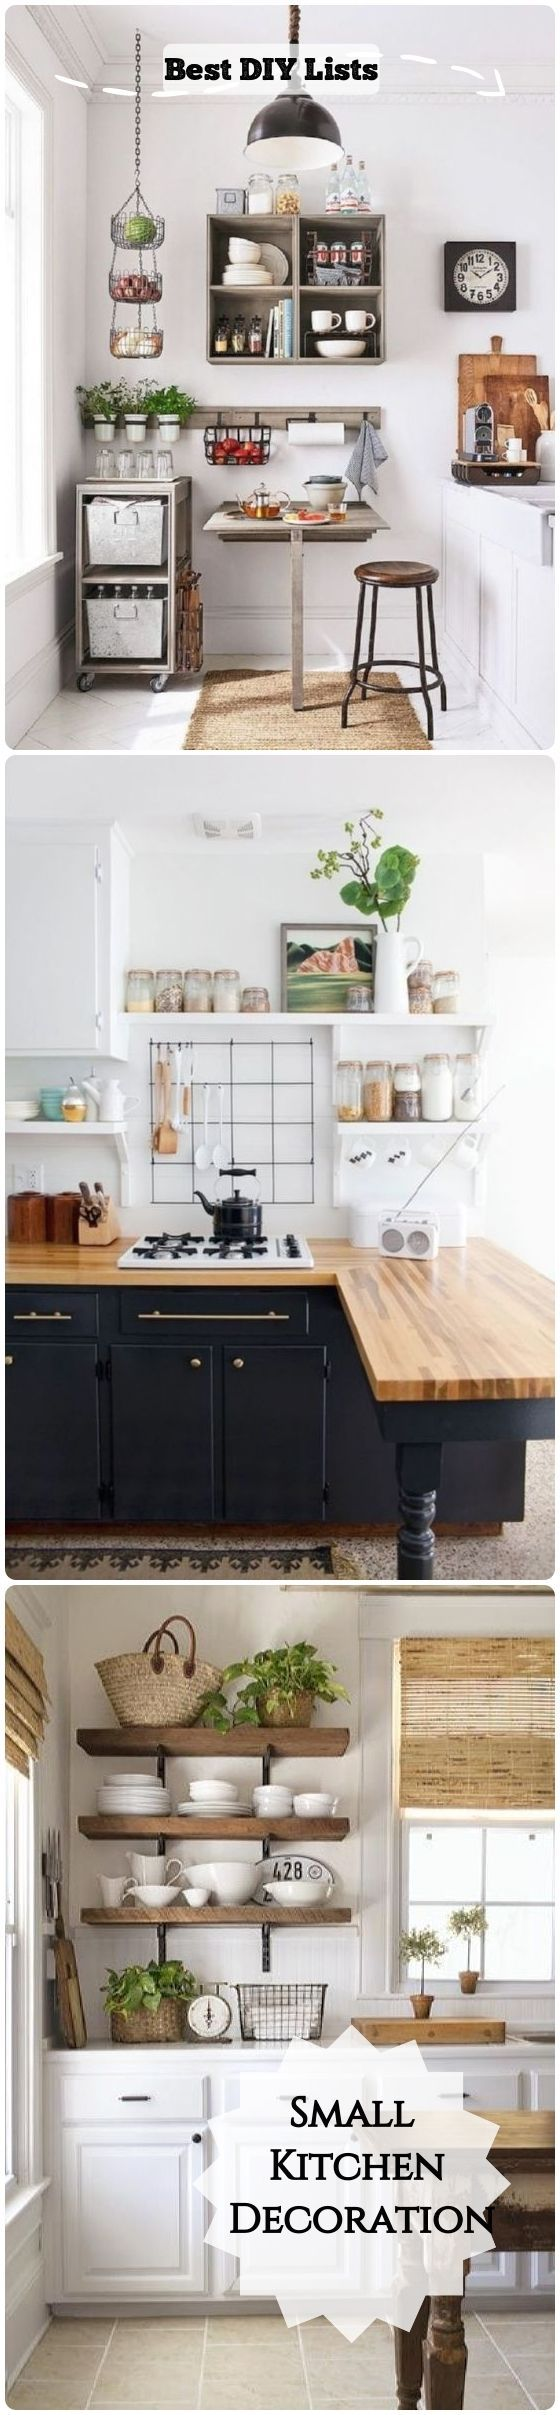 French Home Interior New Small Kitchen Decoration #smallkitchen #kitcheninterior